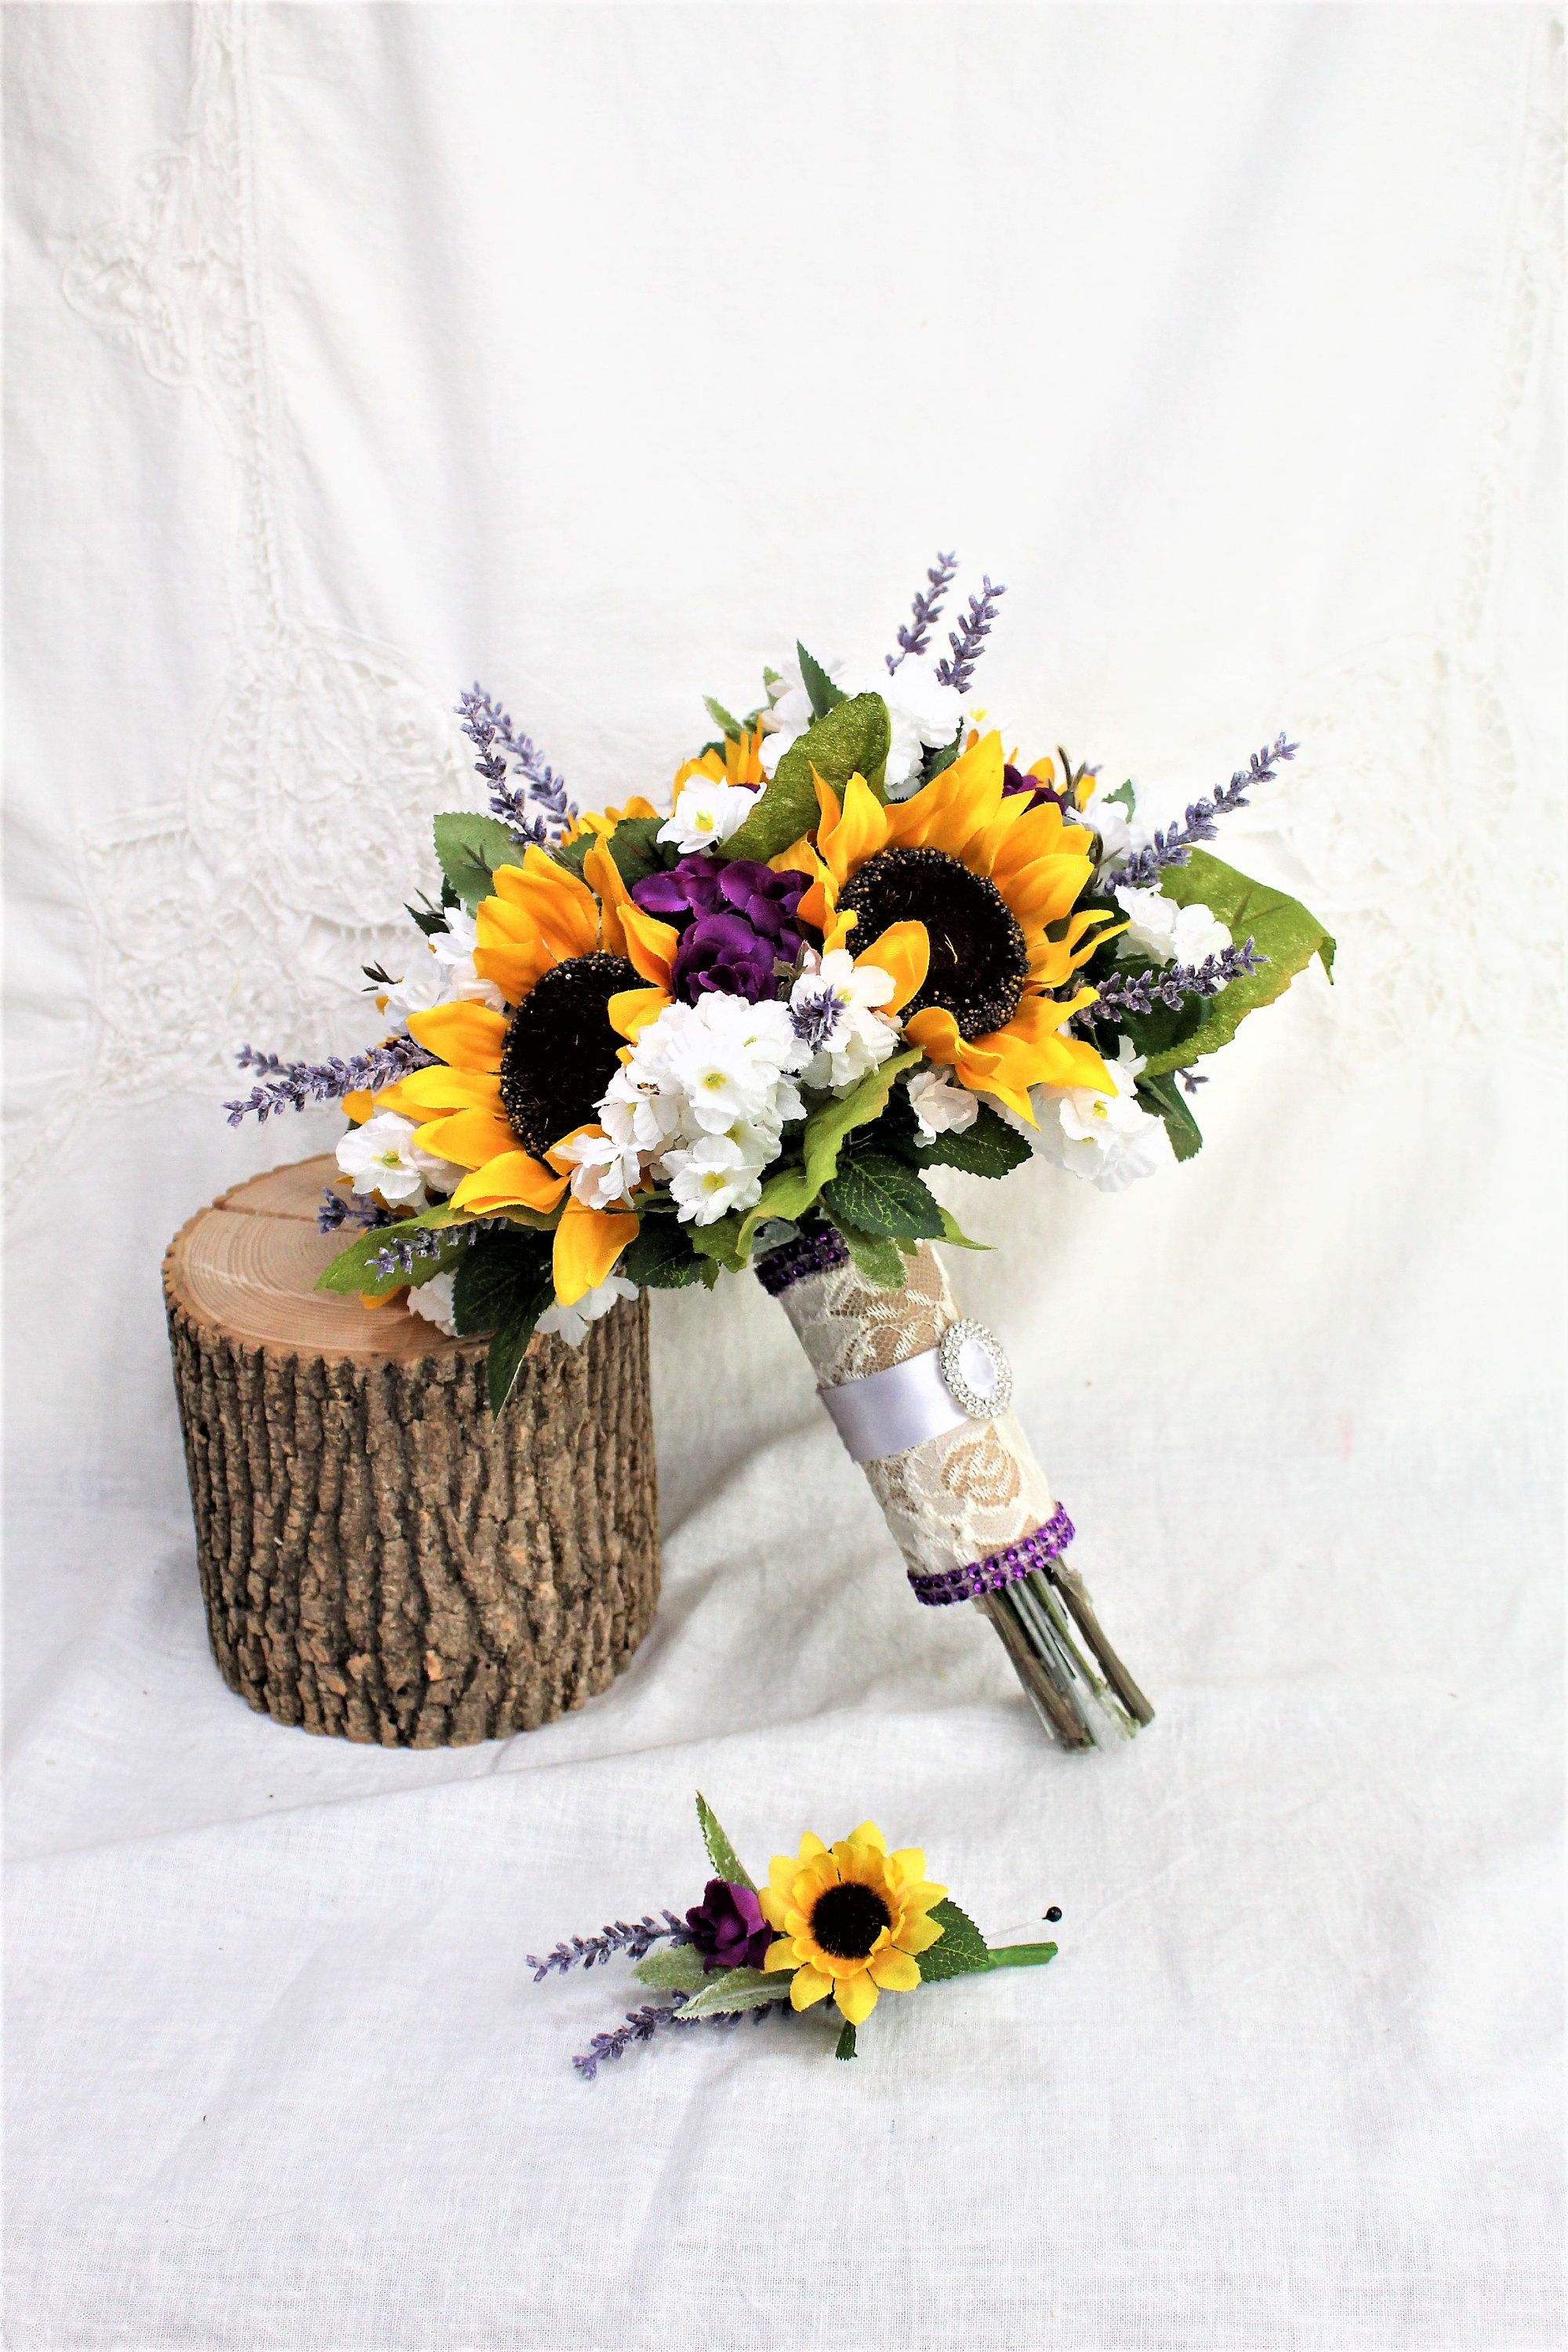 Rustic Wedding Sunflower Bouquet Purple Mini Roses And Lavender Rustic Sunflower Bouquet Wedding Bouquets Bride Diy Wedding Bouquet Sunflower Wedding Bouquet